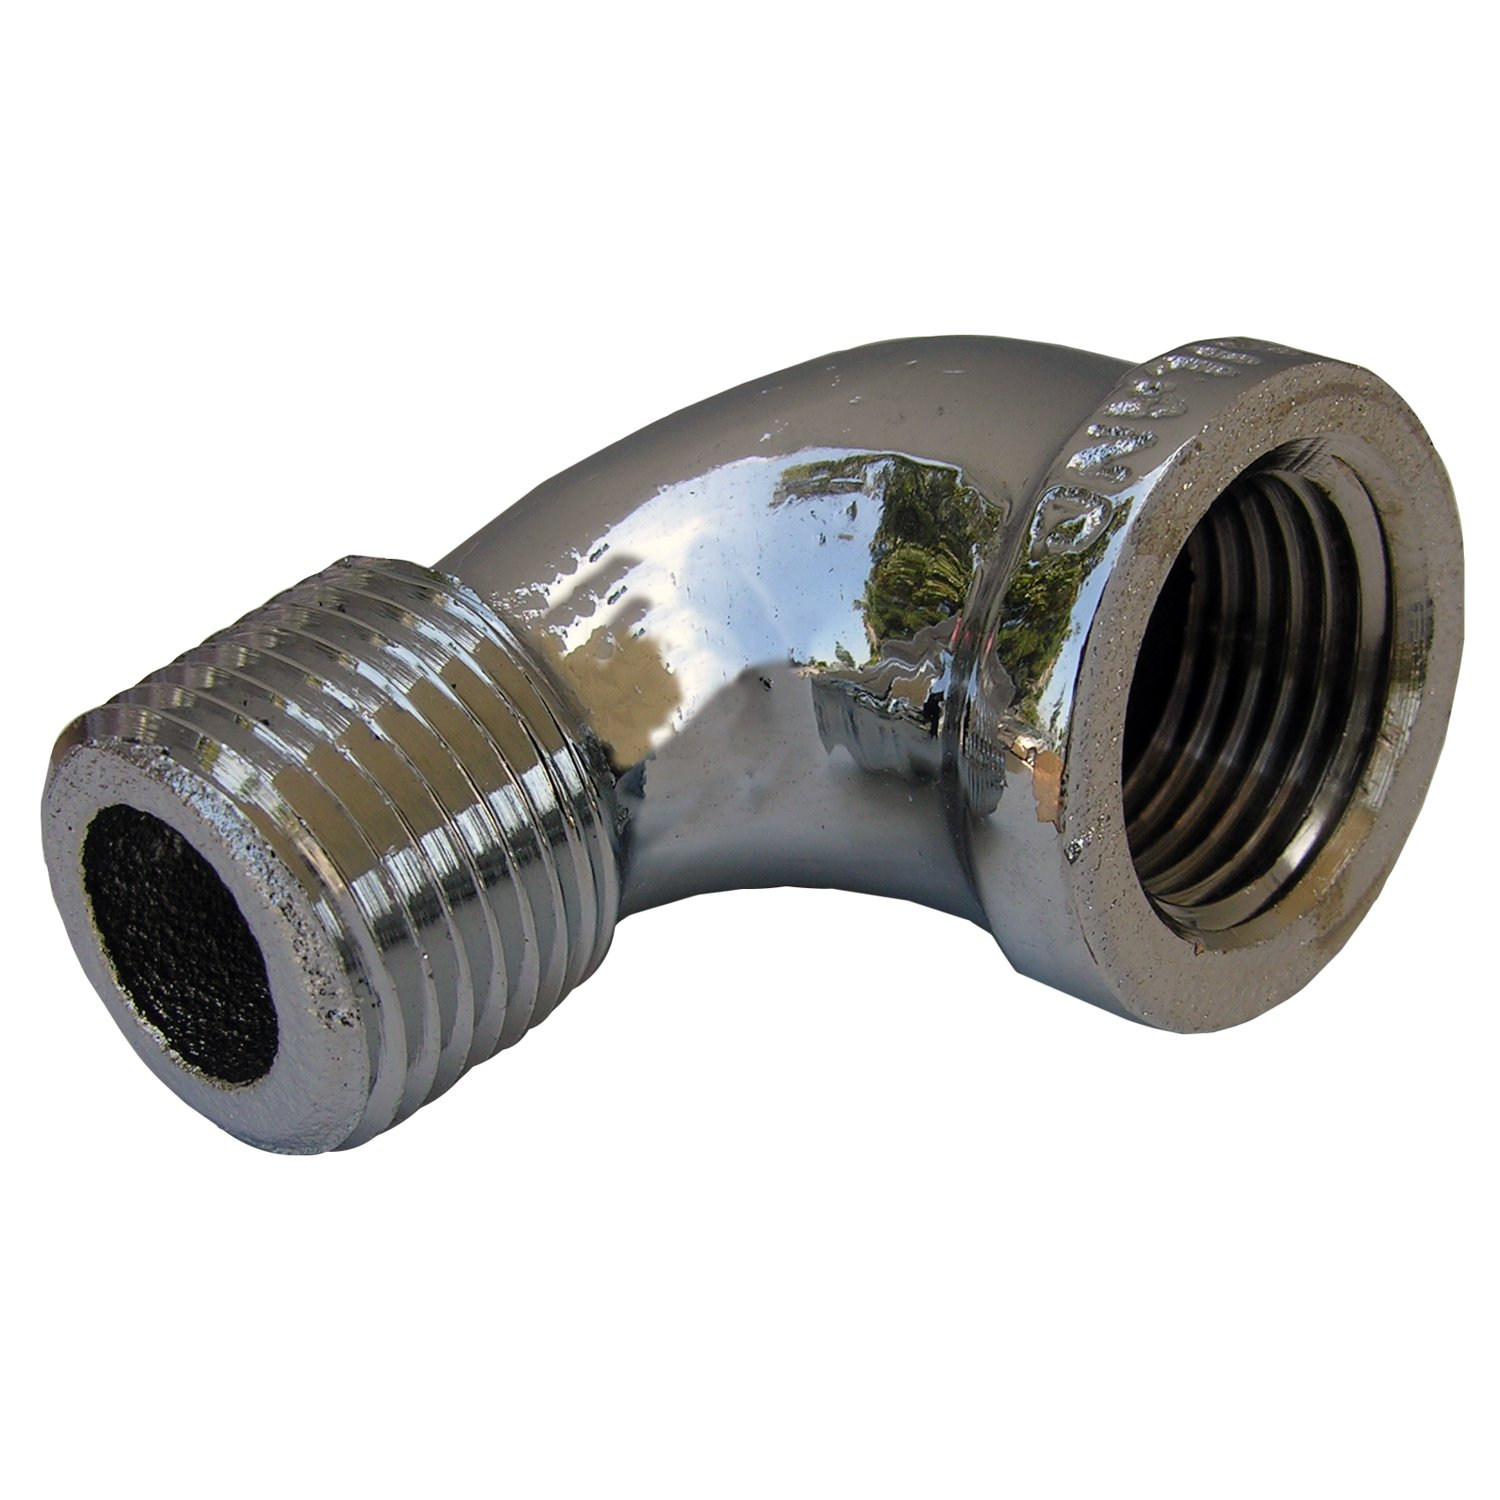 LASCO 32-0089 1//2-Inch Female Pipe Thread Chrome Plated Brass 90-Degree Street Ell//Elbow